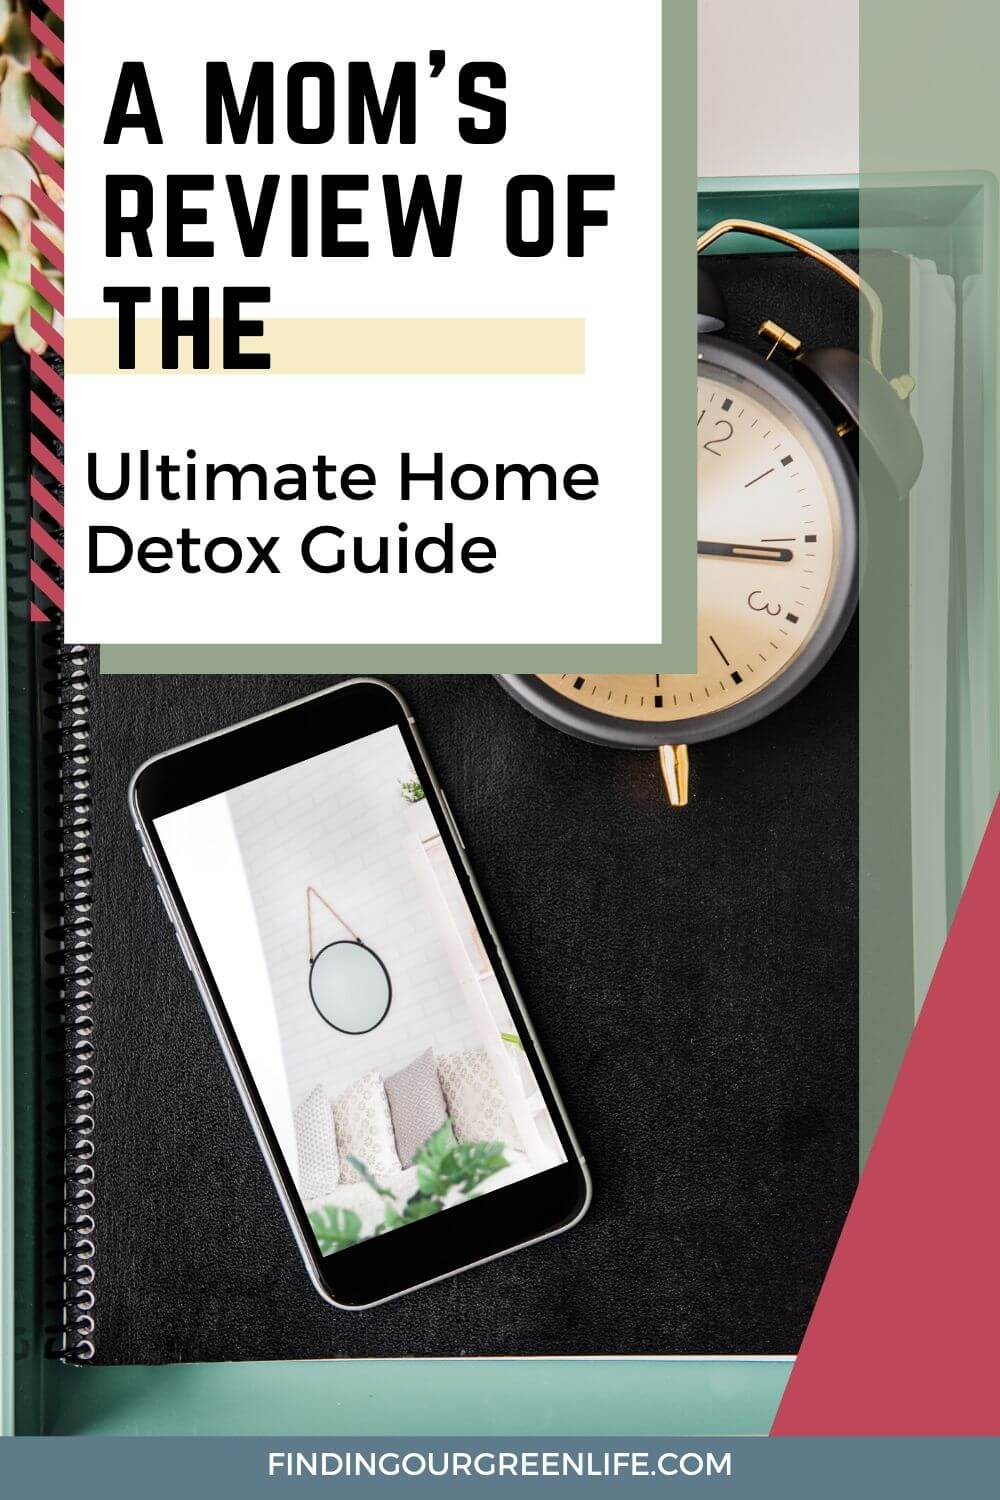 Ultimate Home Detox Guide Review